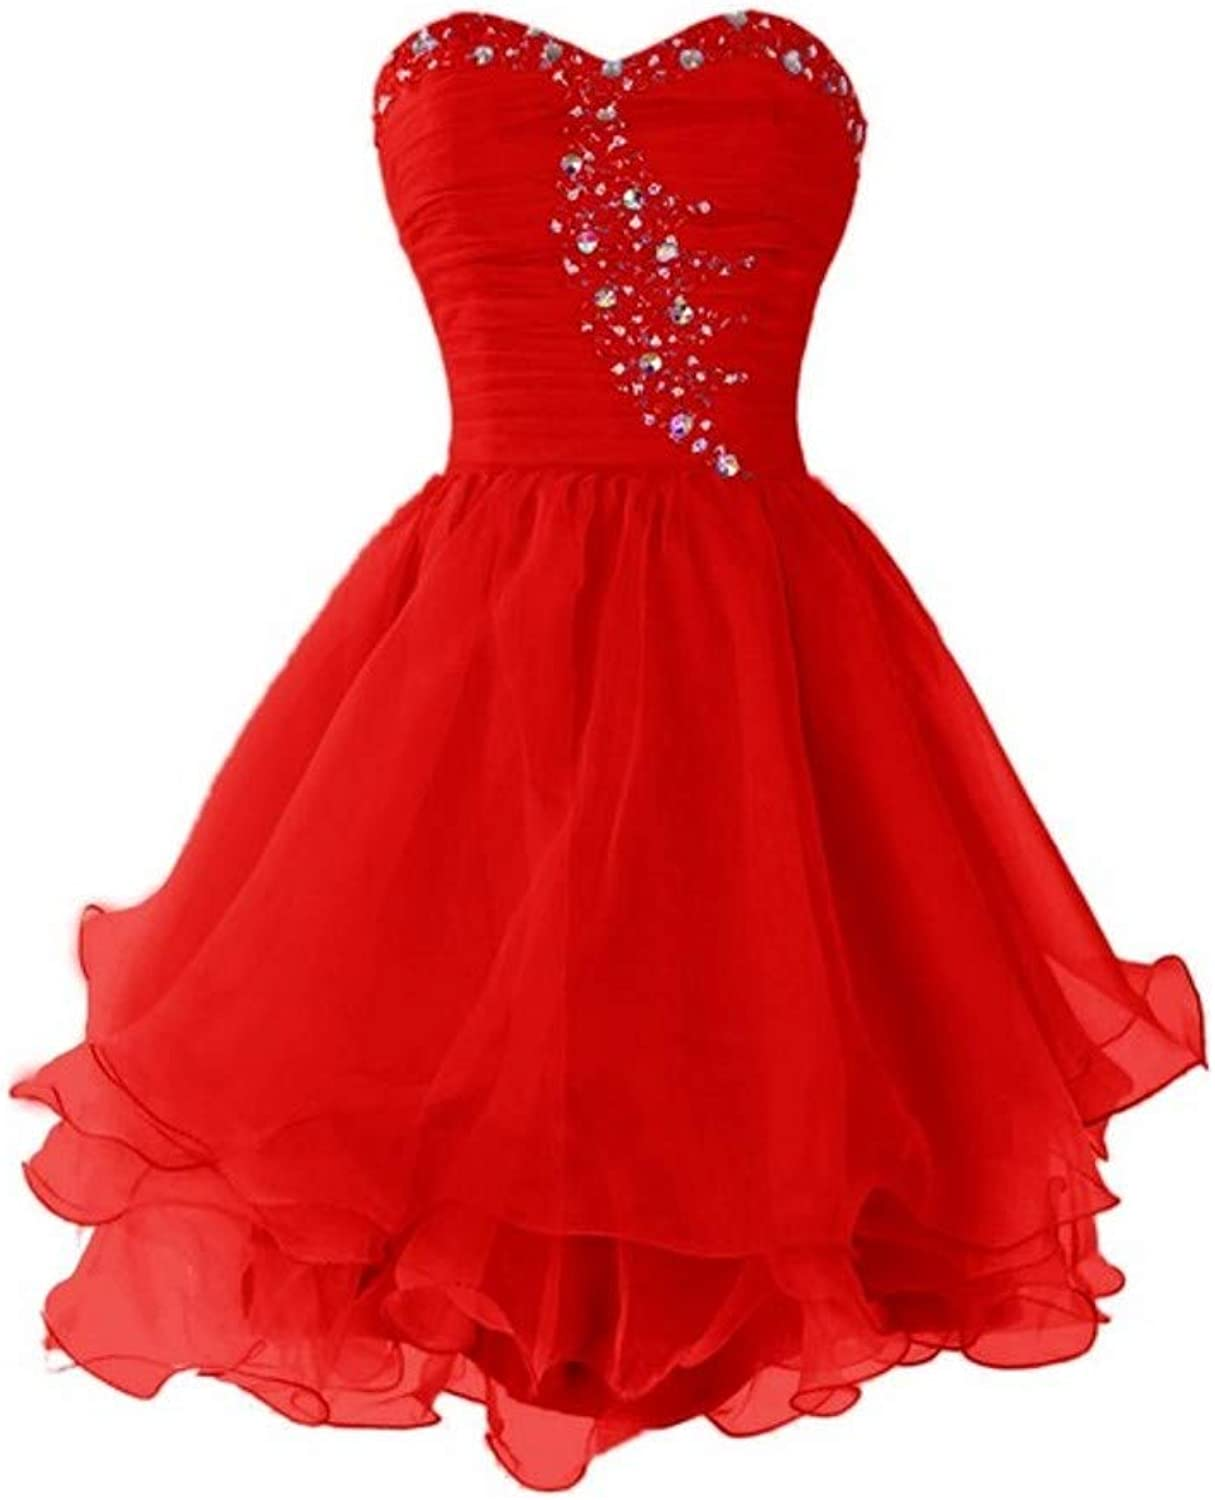 Darcy74Dulles Women's Beaded Sweetheart Short Homecoming Dress 2019 Tulle Strapless Prom Graduation Dresses